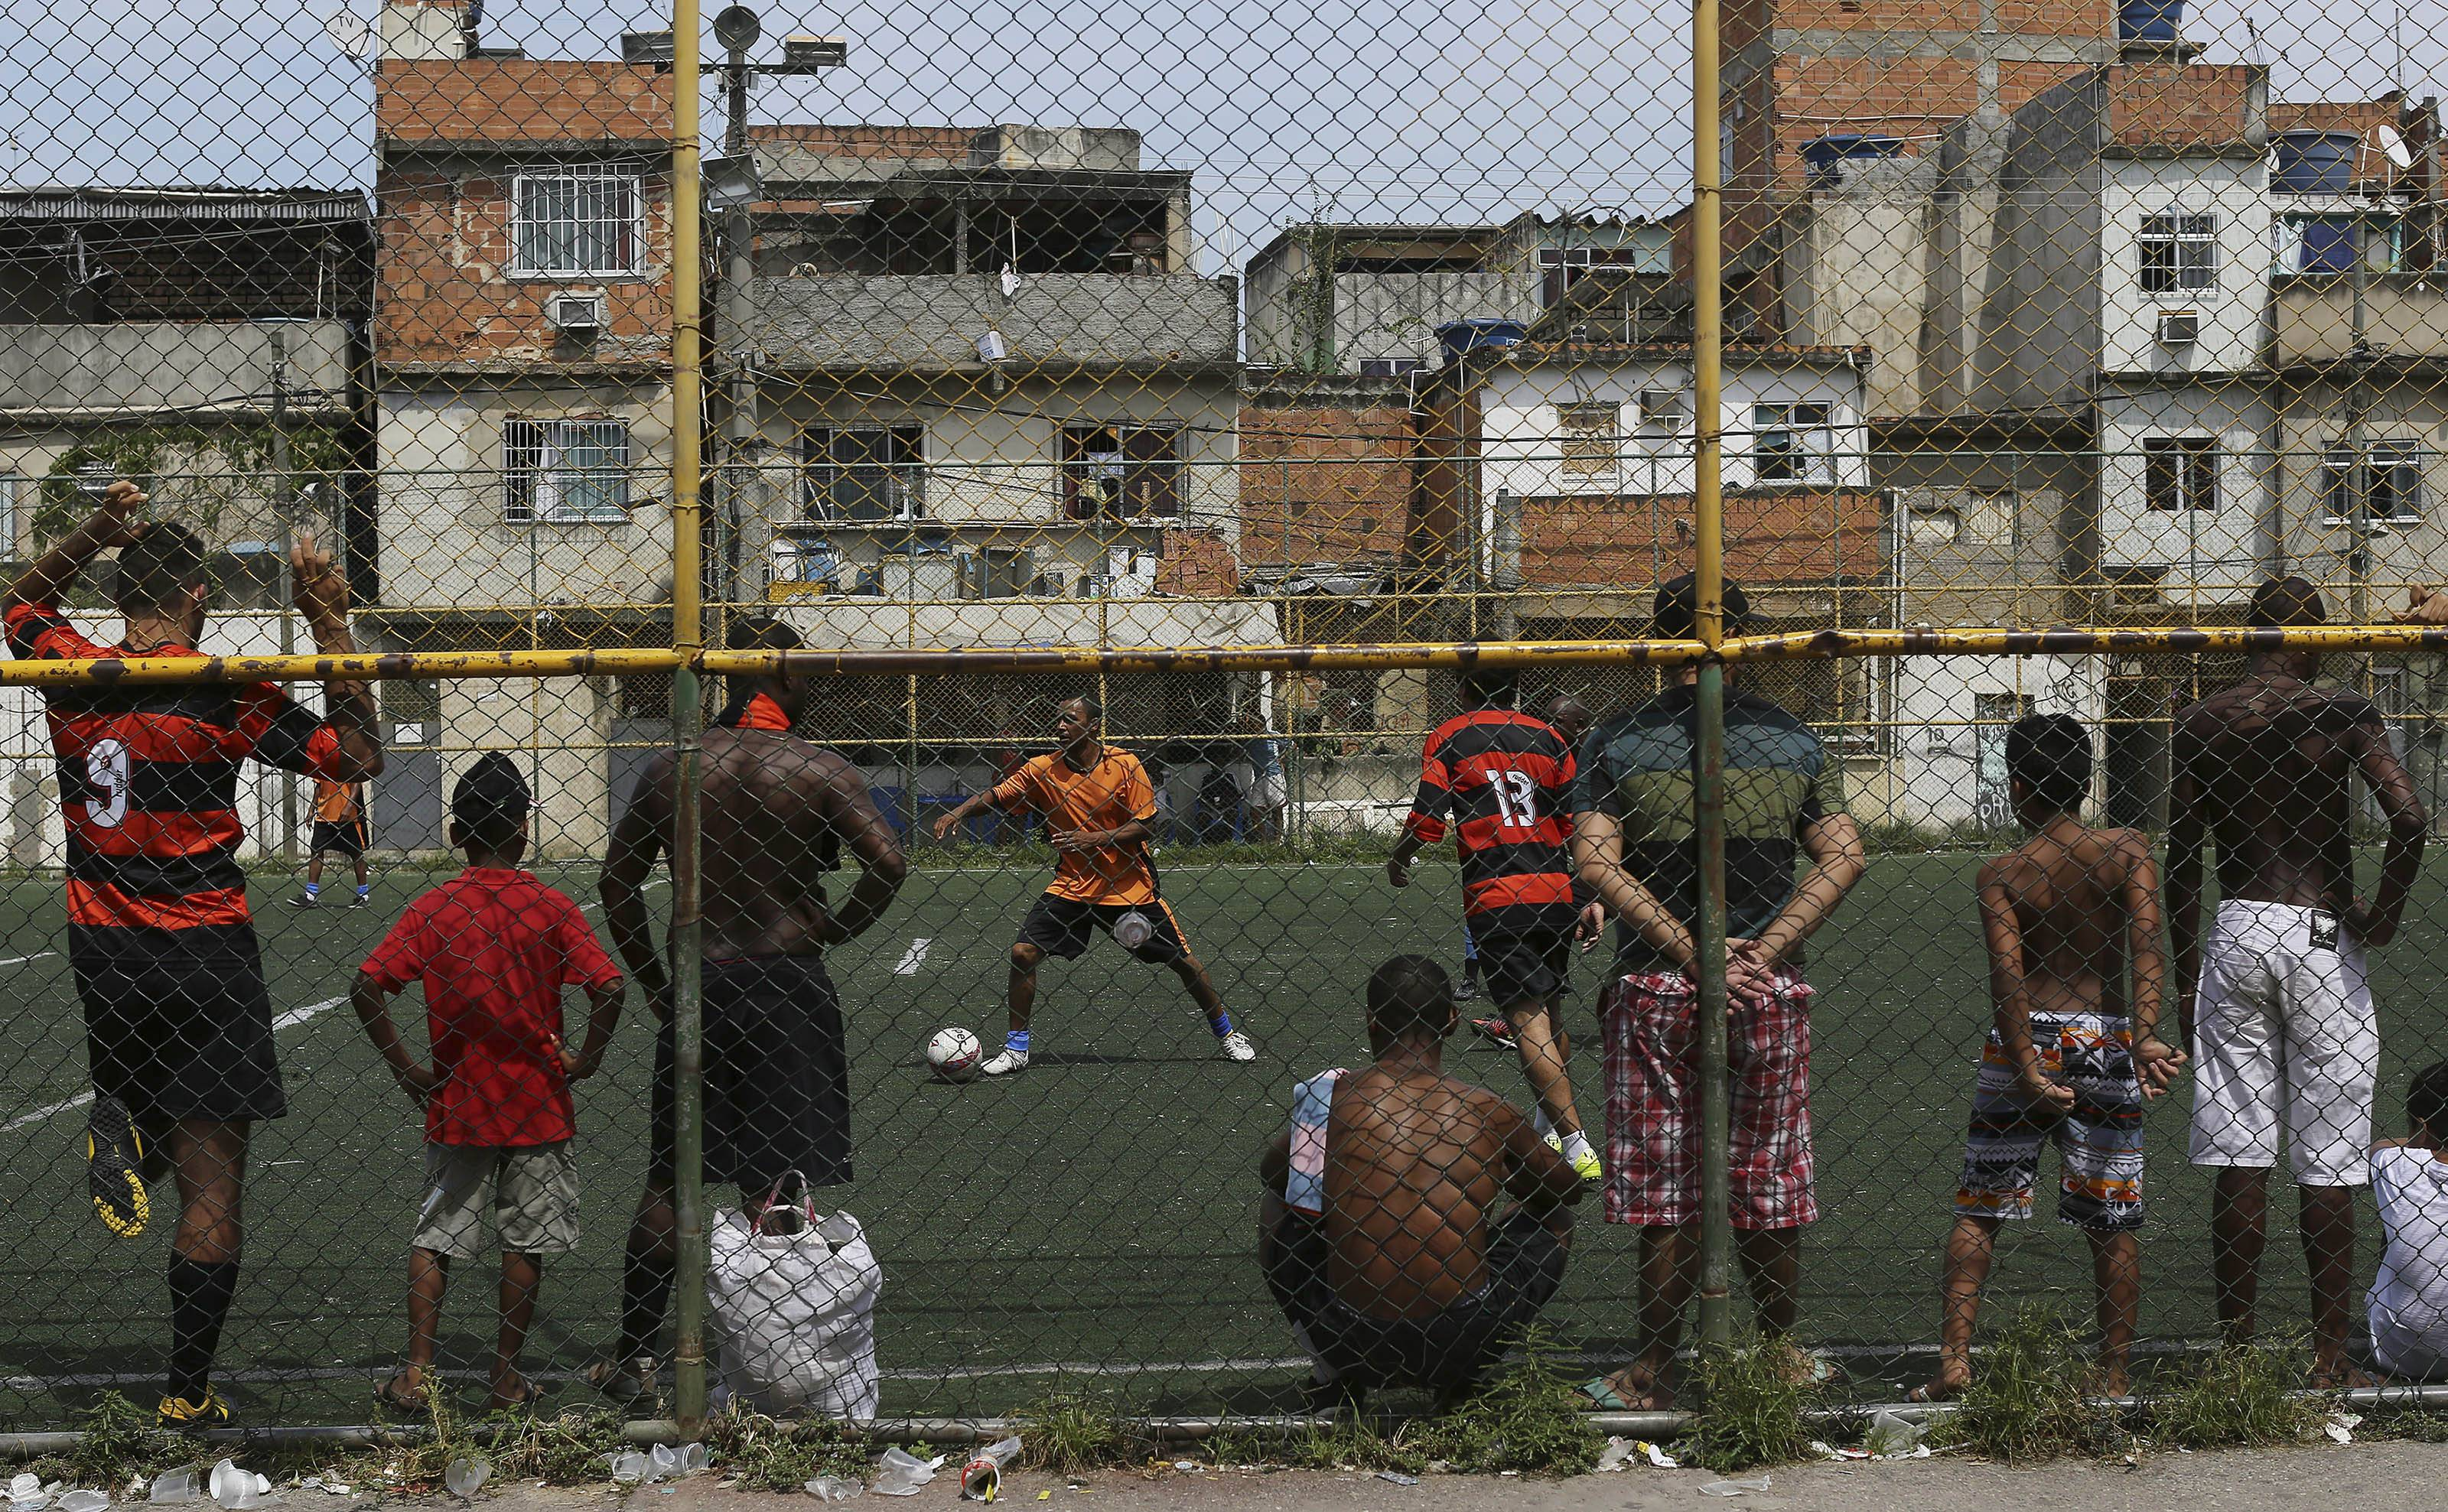 "Residents play soccer at the Nova Holanda, part of the Mare slum complex in Rio de Janeiro, Brazil, Sunday, March 30, 2014. The Mare complex of slums, home to about 130,000 people and located near the international airport, is the latest area targeted for the government's ""pacification"" program, which sees officers move in, push out drug gangs and set up permanent police posts. (AP Photo/Leo Correa)"